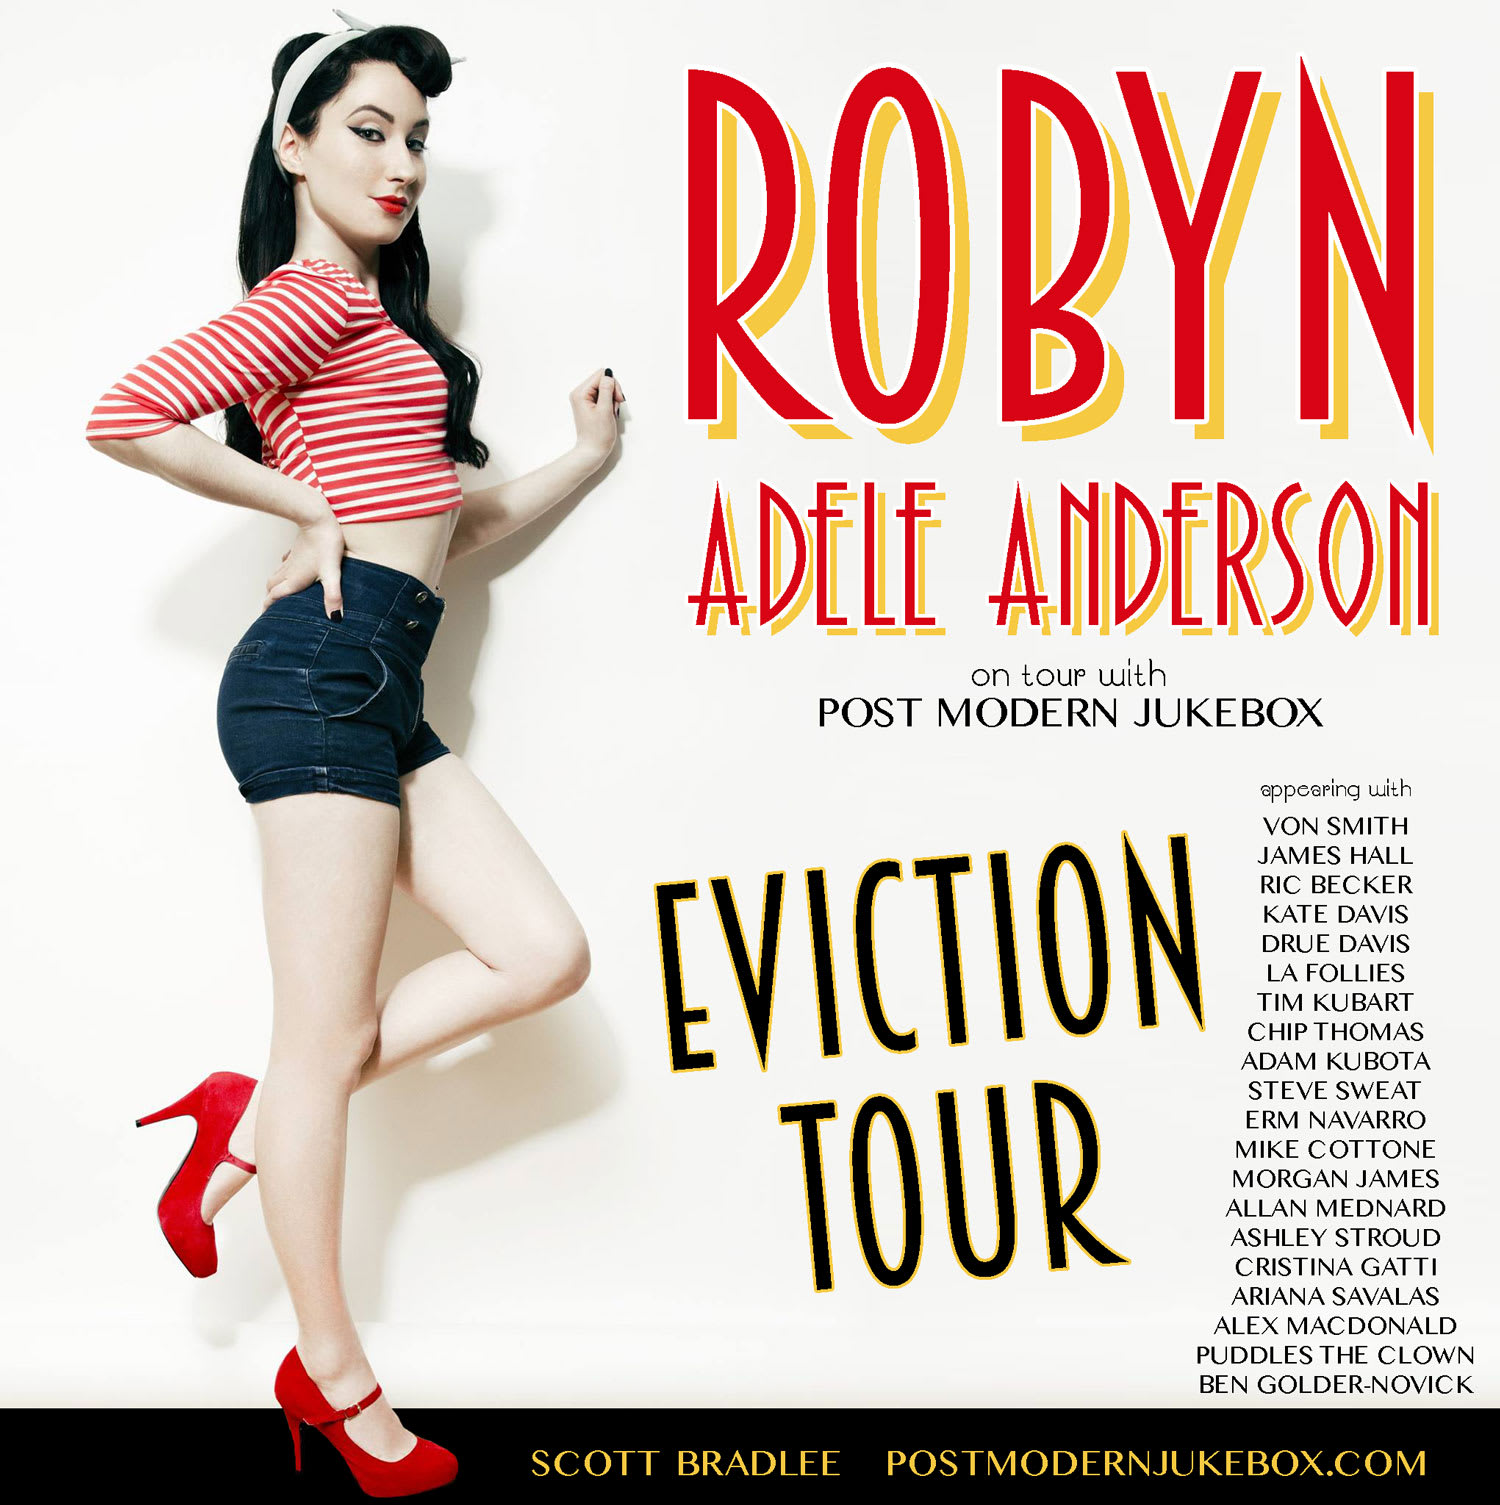 Robyn Adele Anderson Eviction Tour Promo Poster